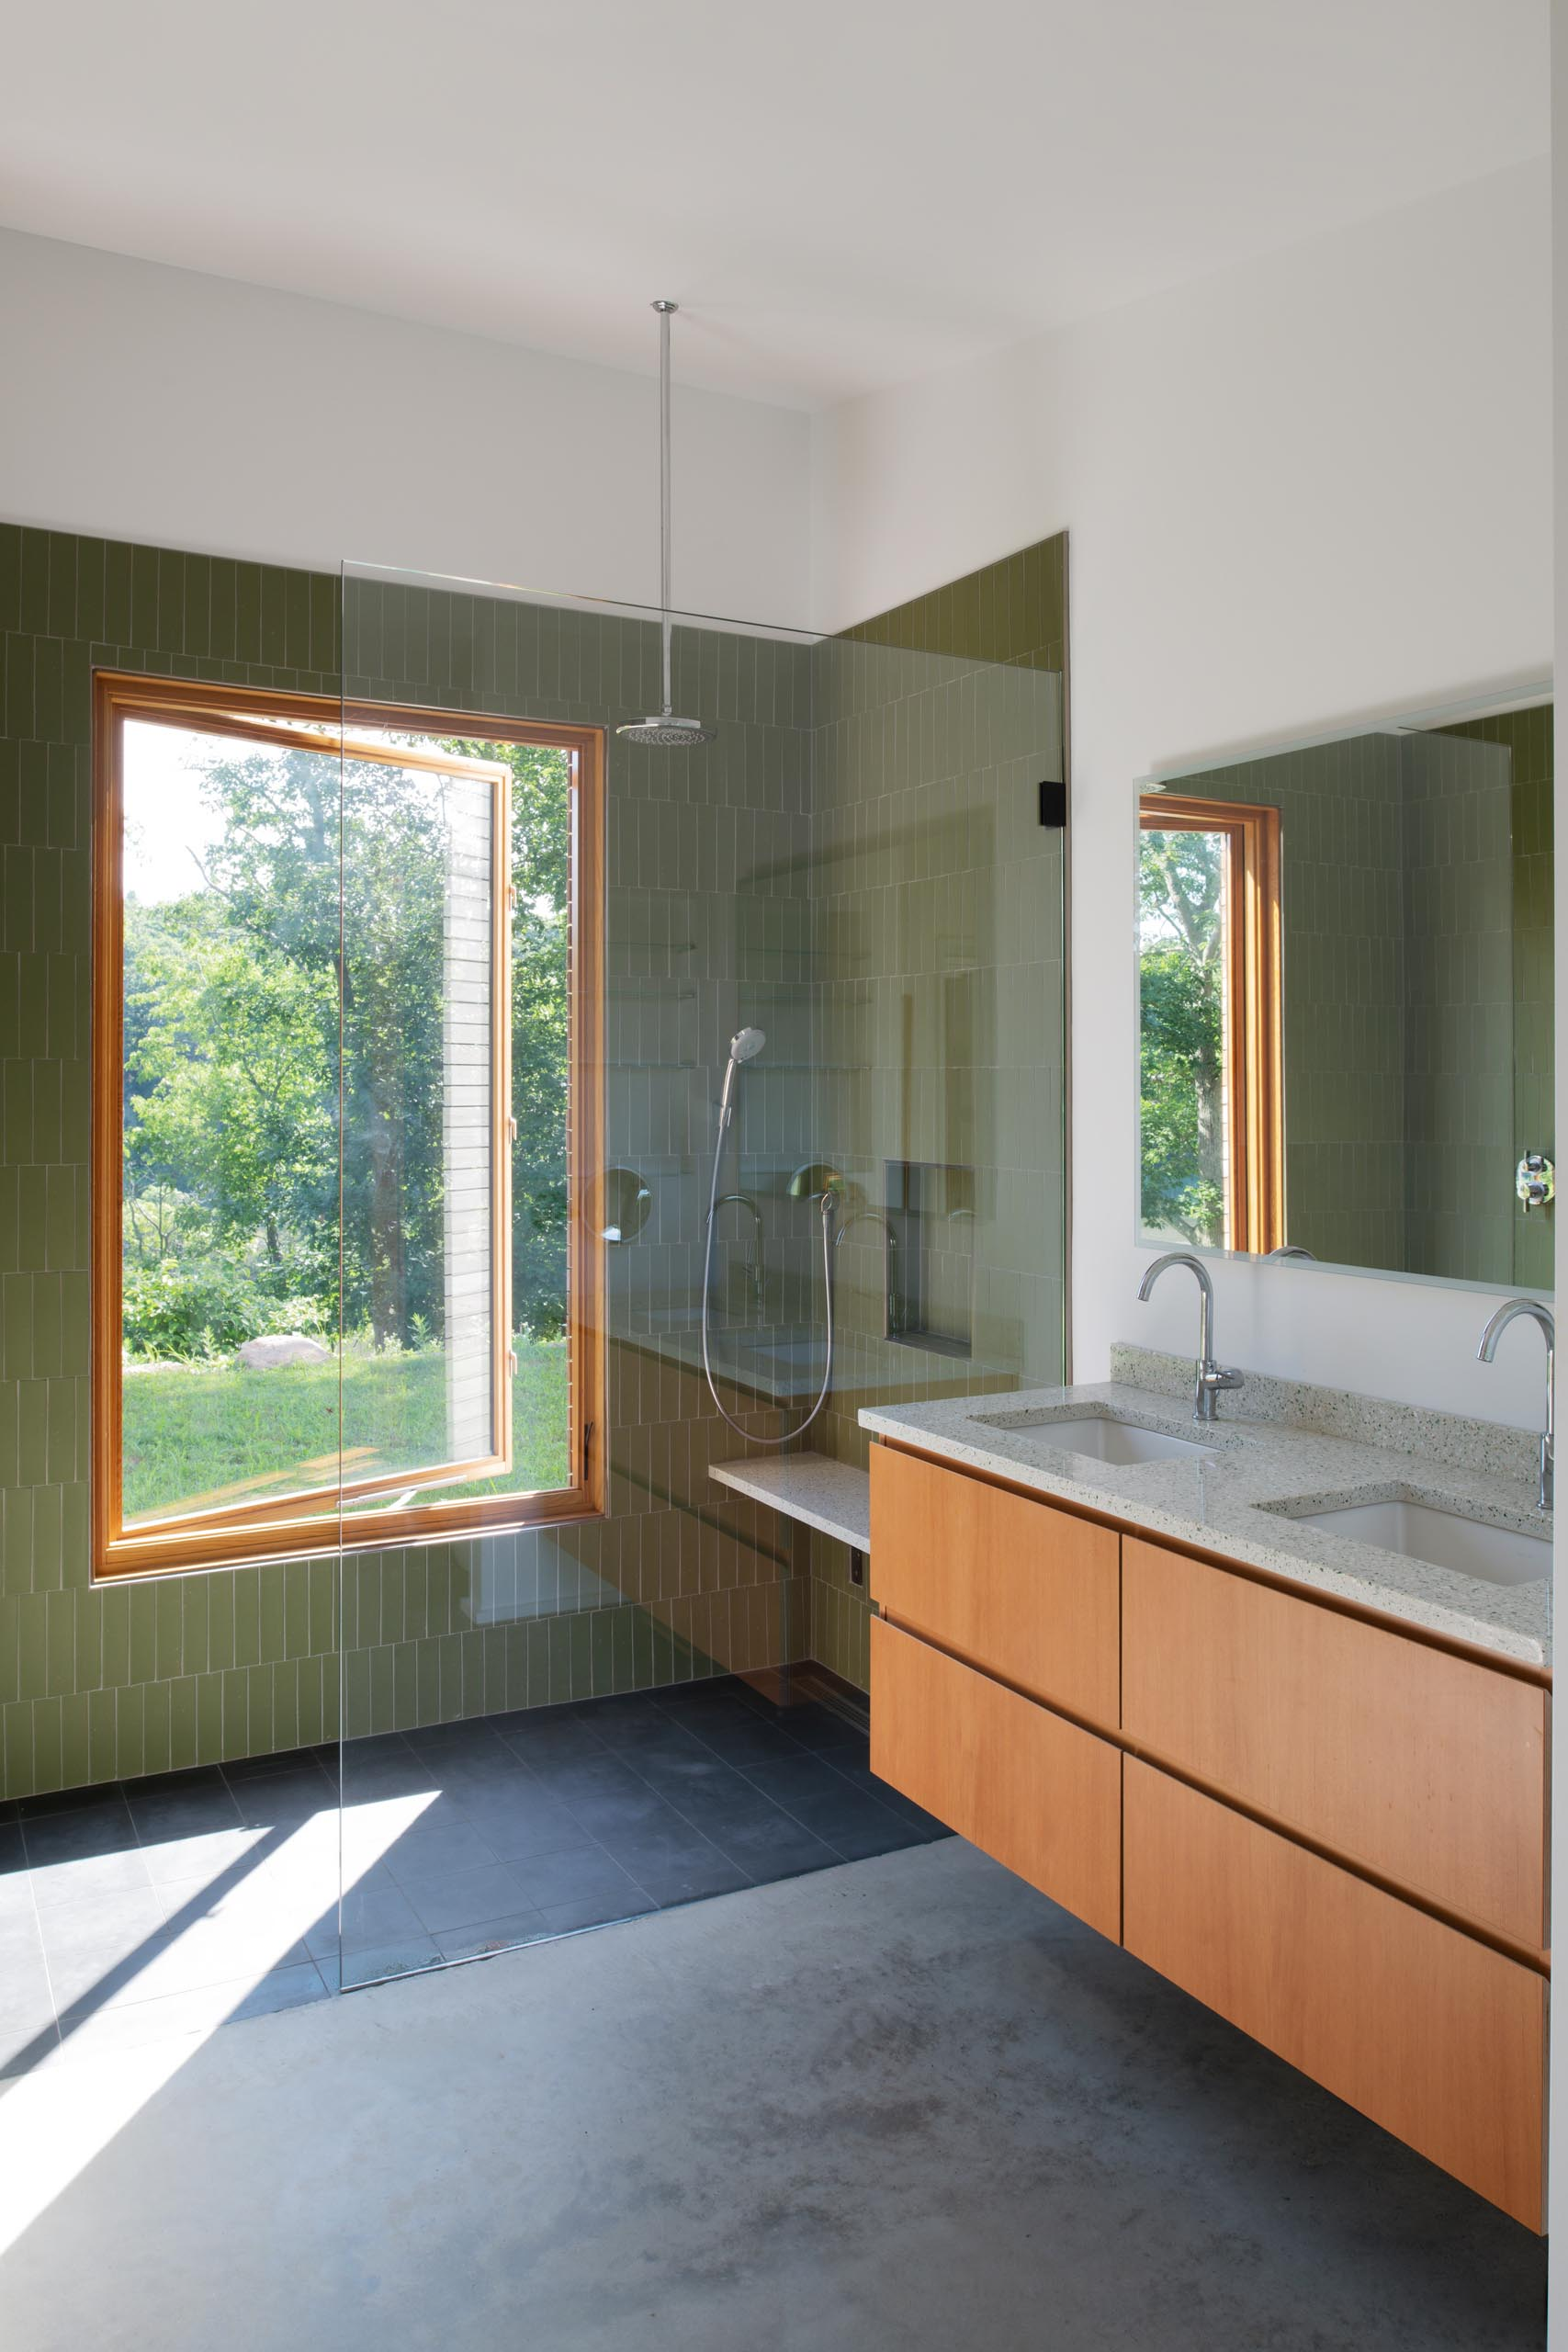 A modern bathroom with green accent tiles that covered the shower walls.